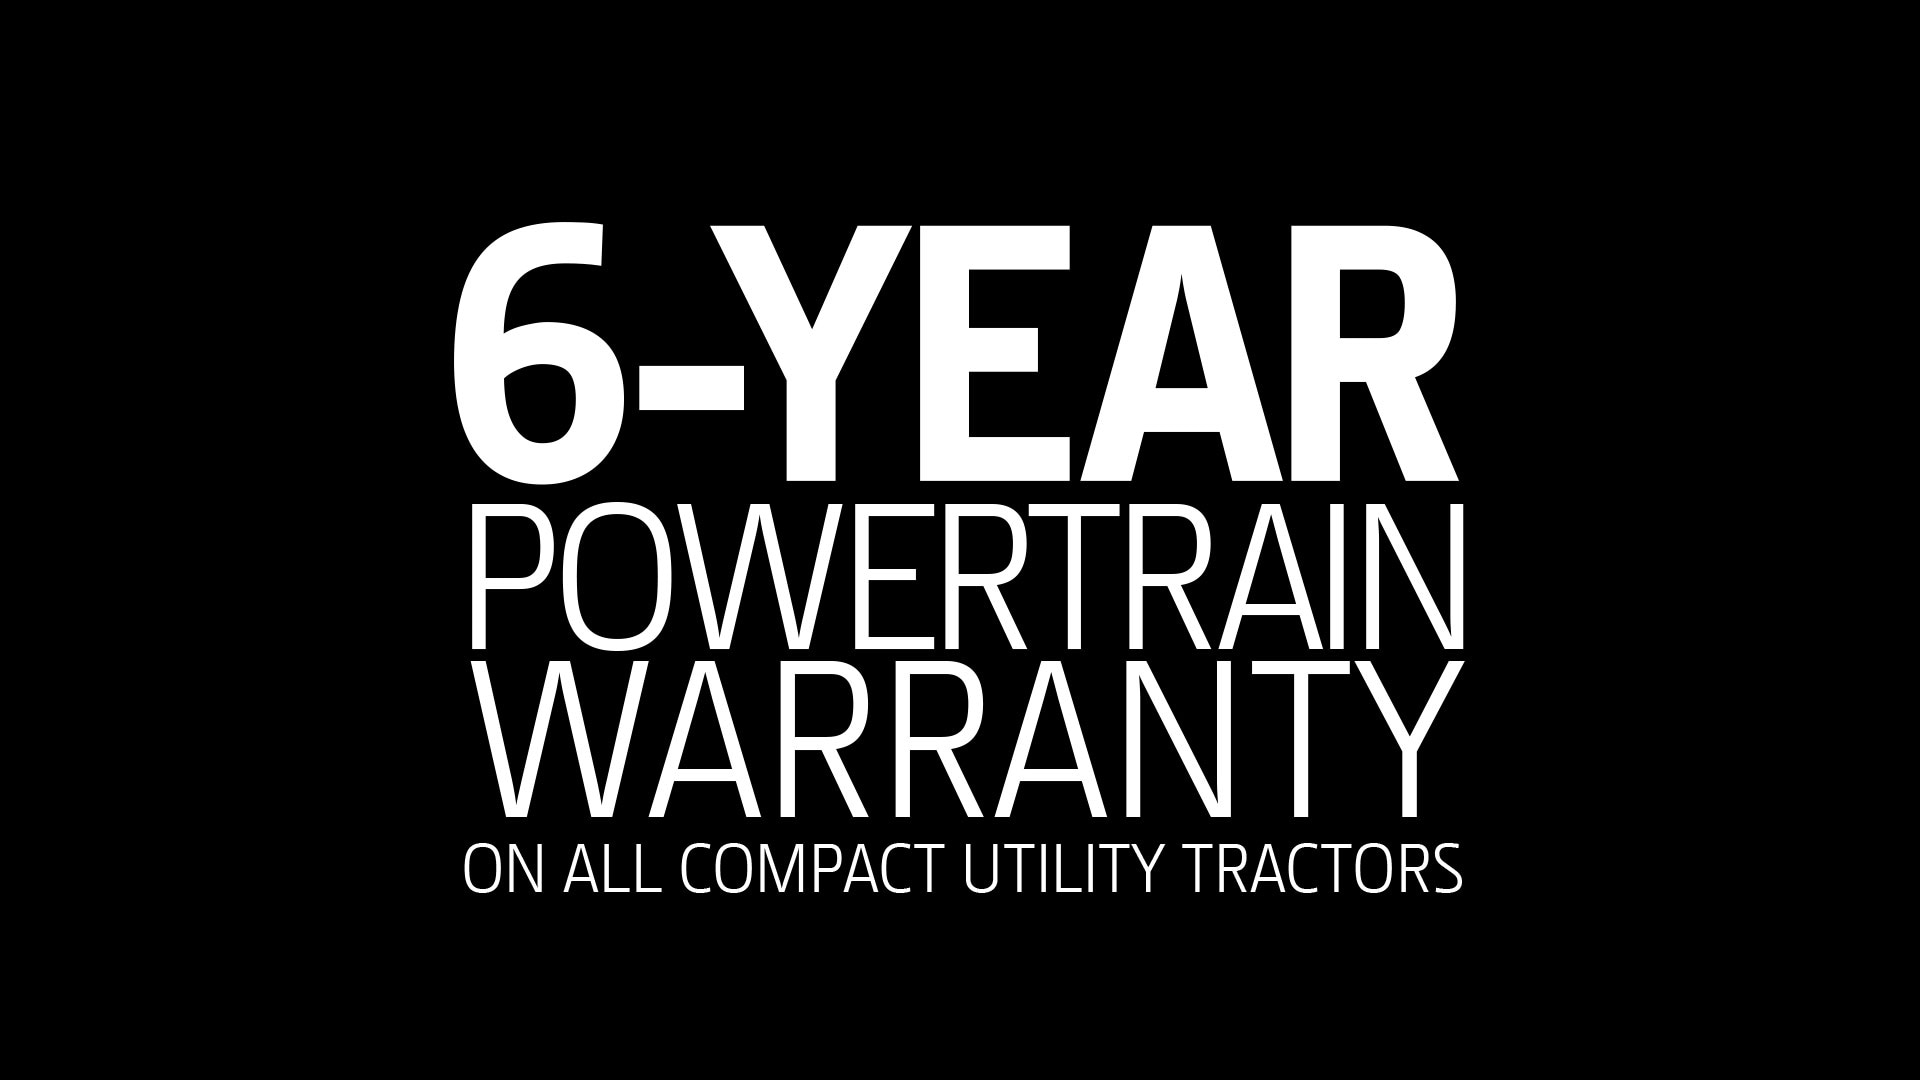 cut-6-year-warranty-nmb